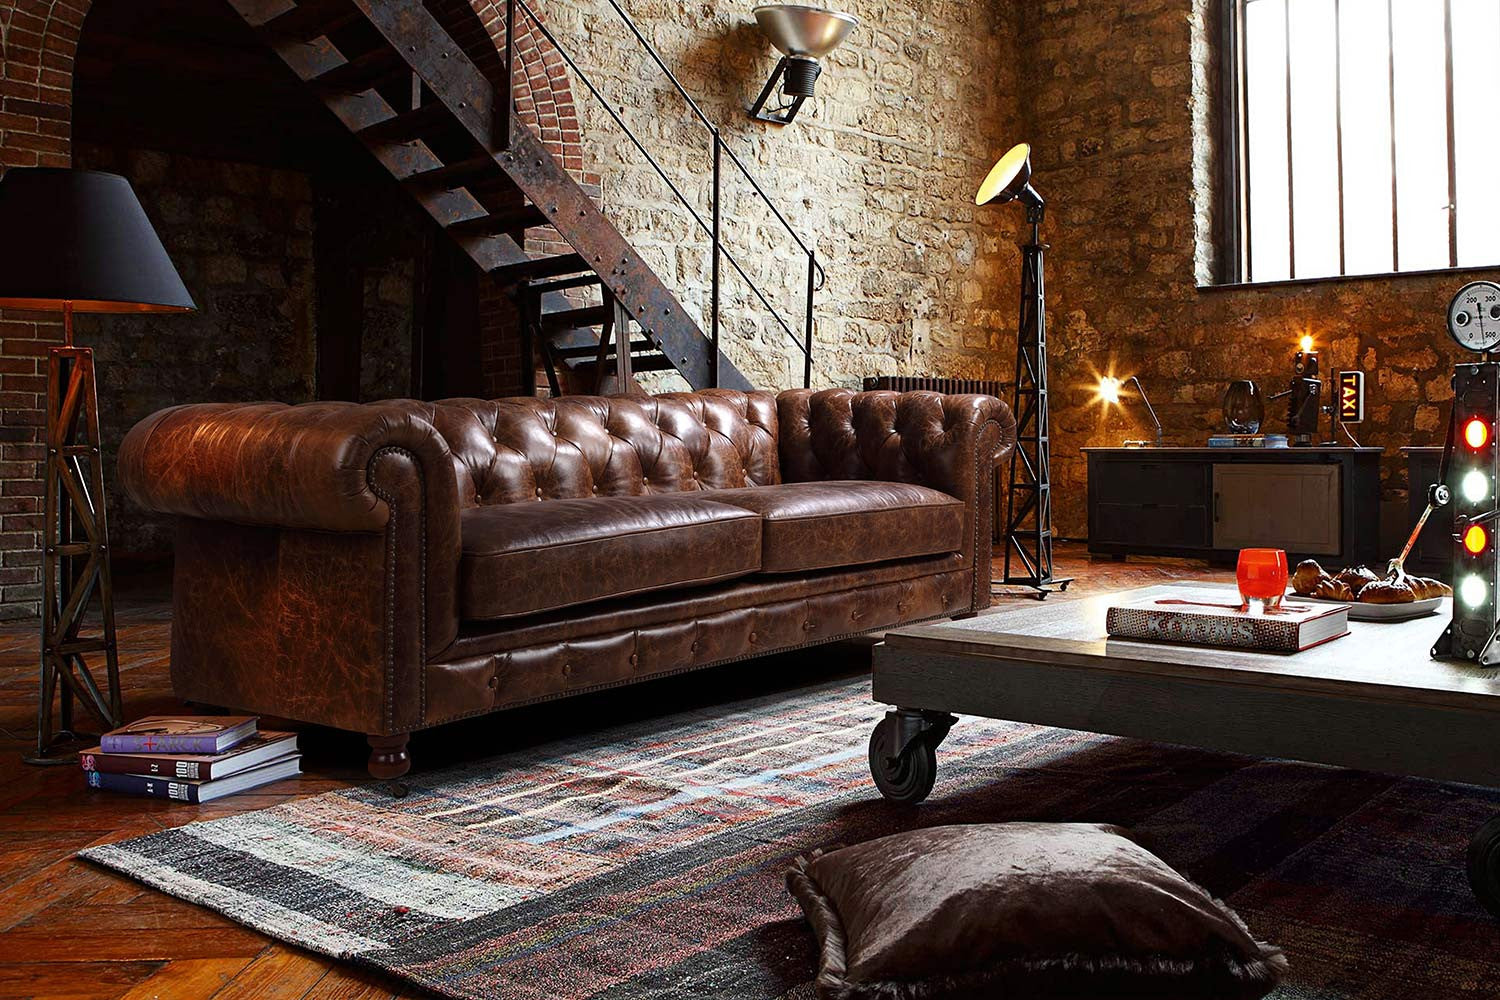 kensington chesterfield leather sofa by rose moore in an industrial interior chesterfield furniture history